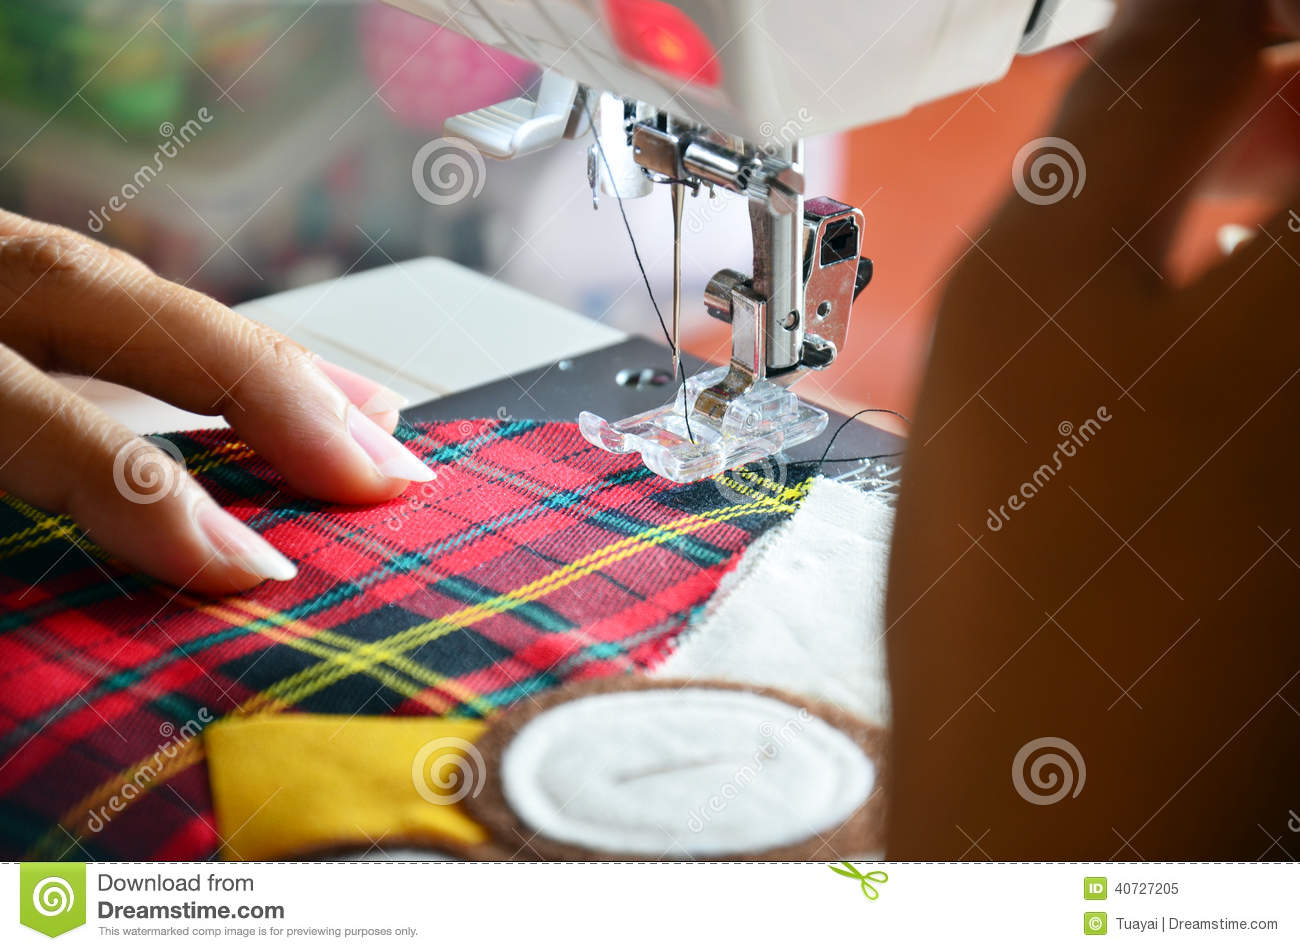 my hobby is sewing